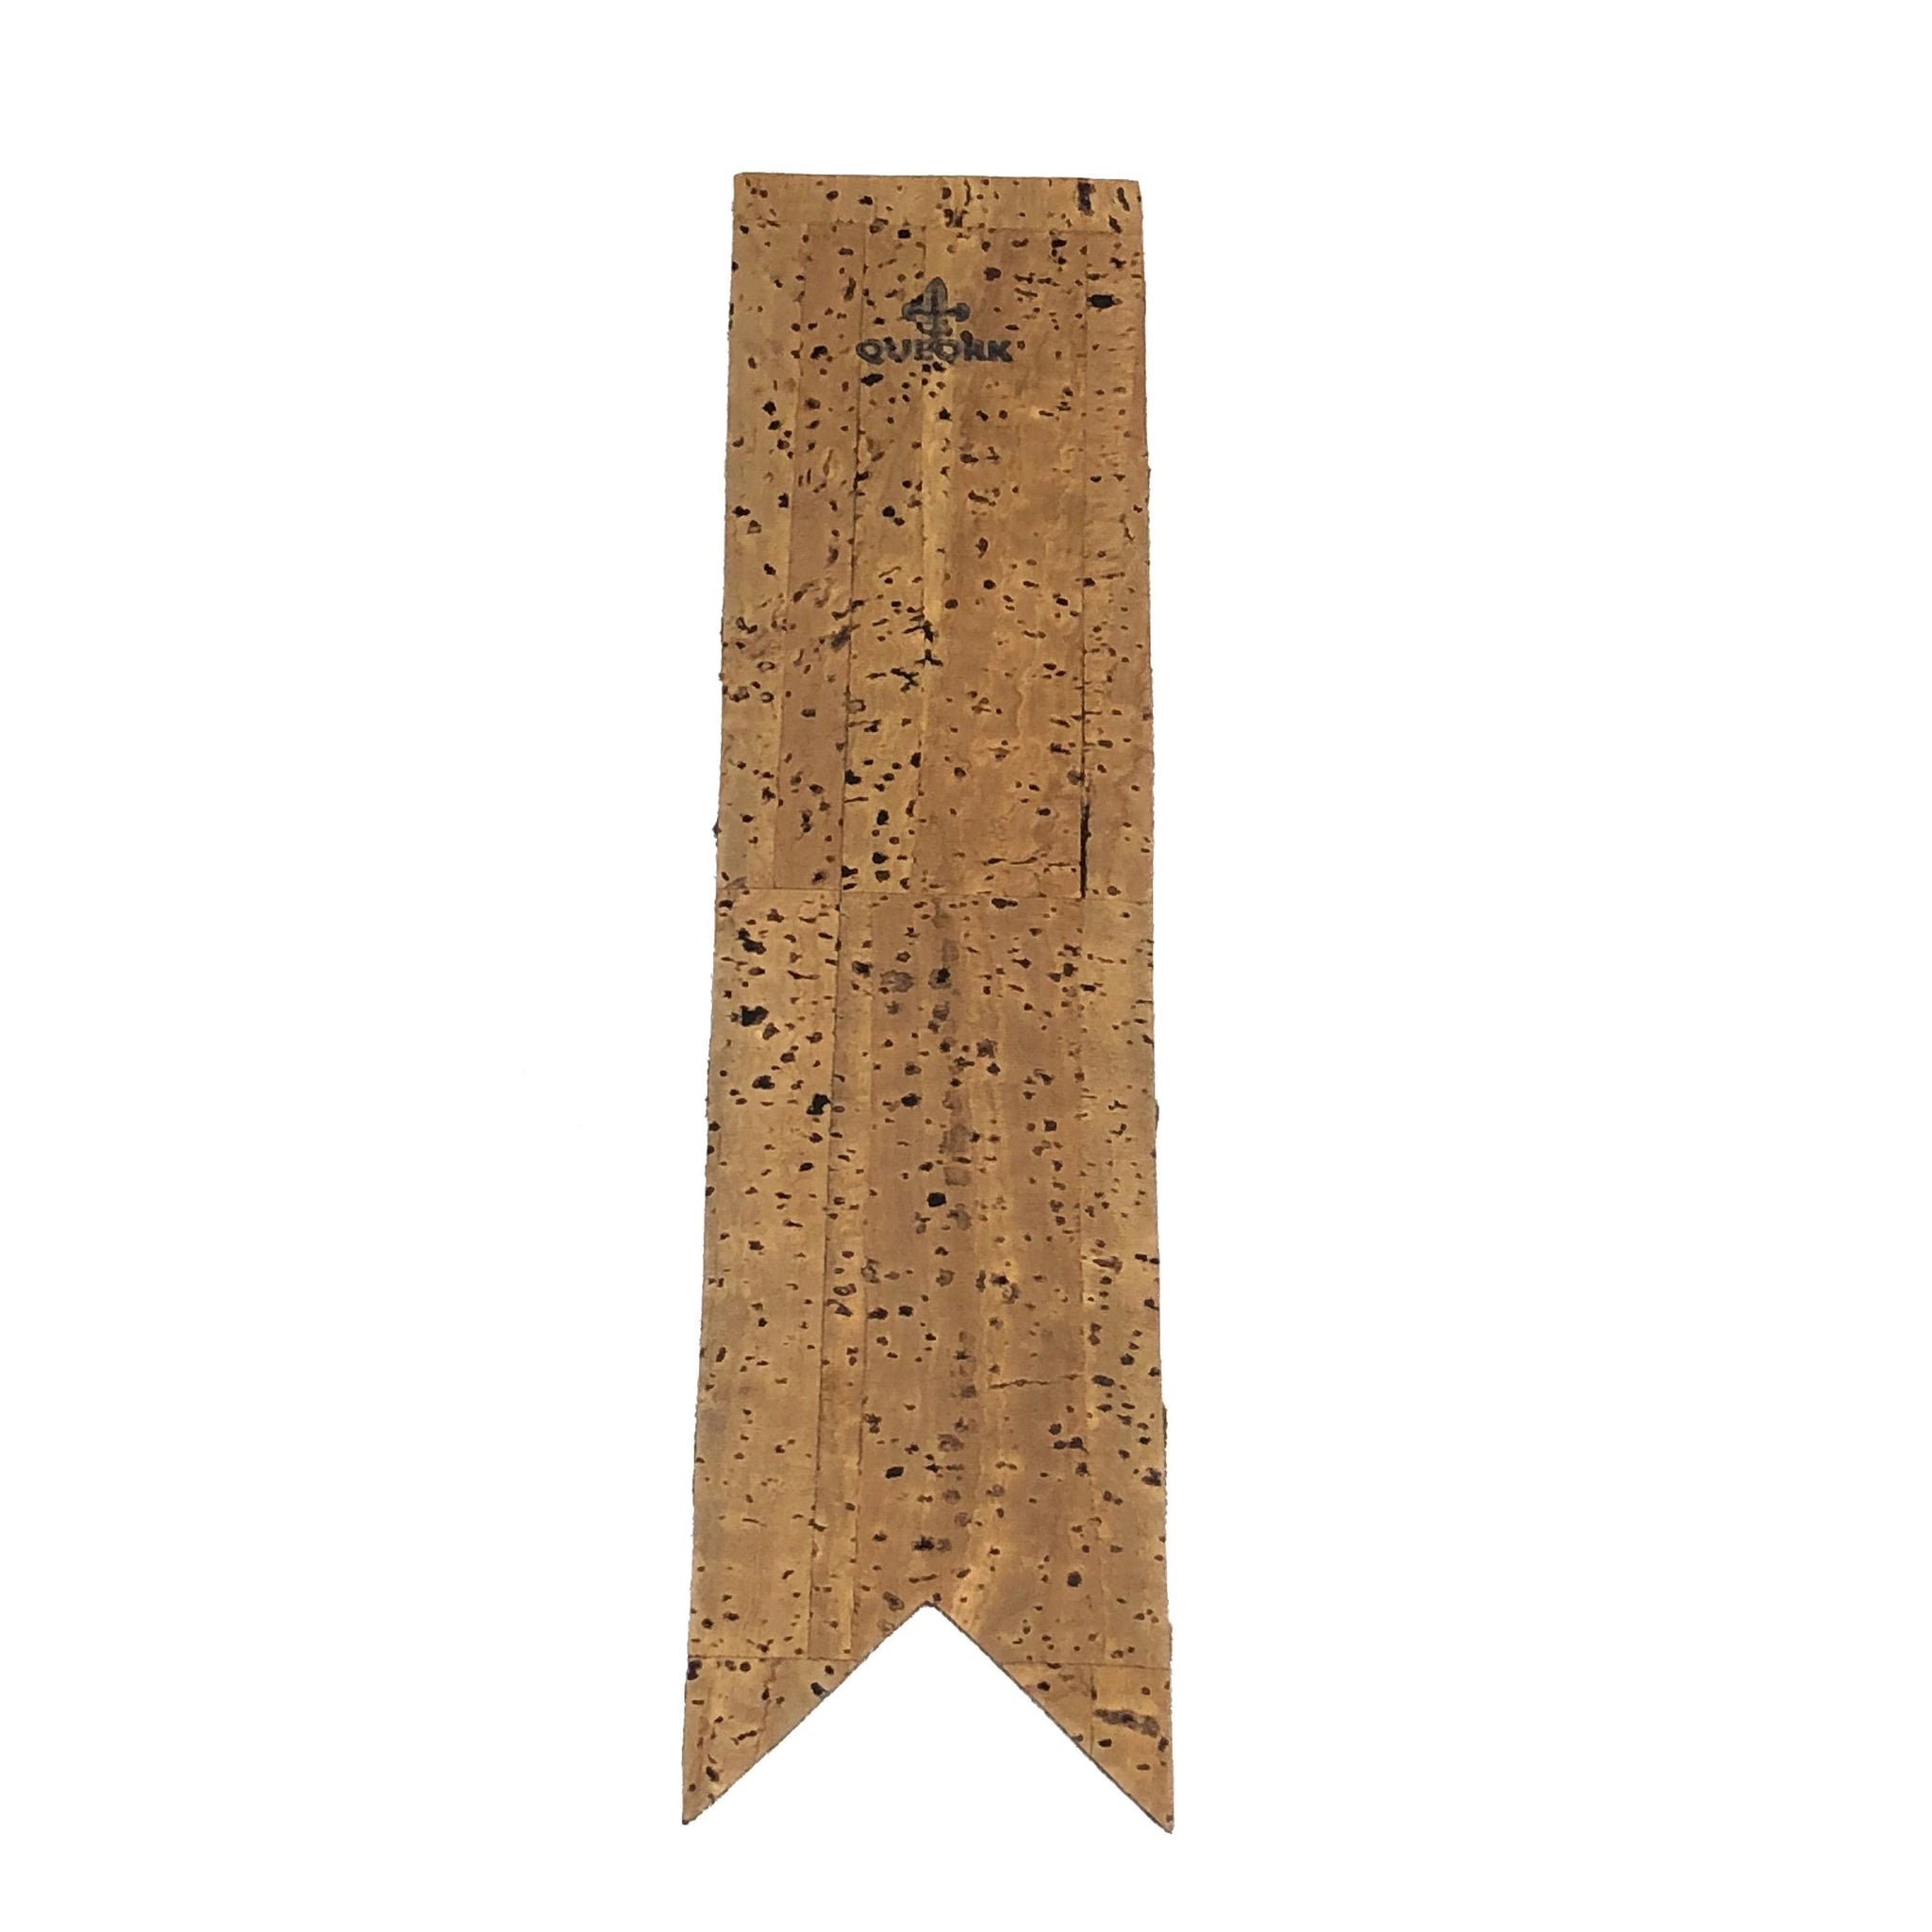 queork cork bookmark beige